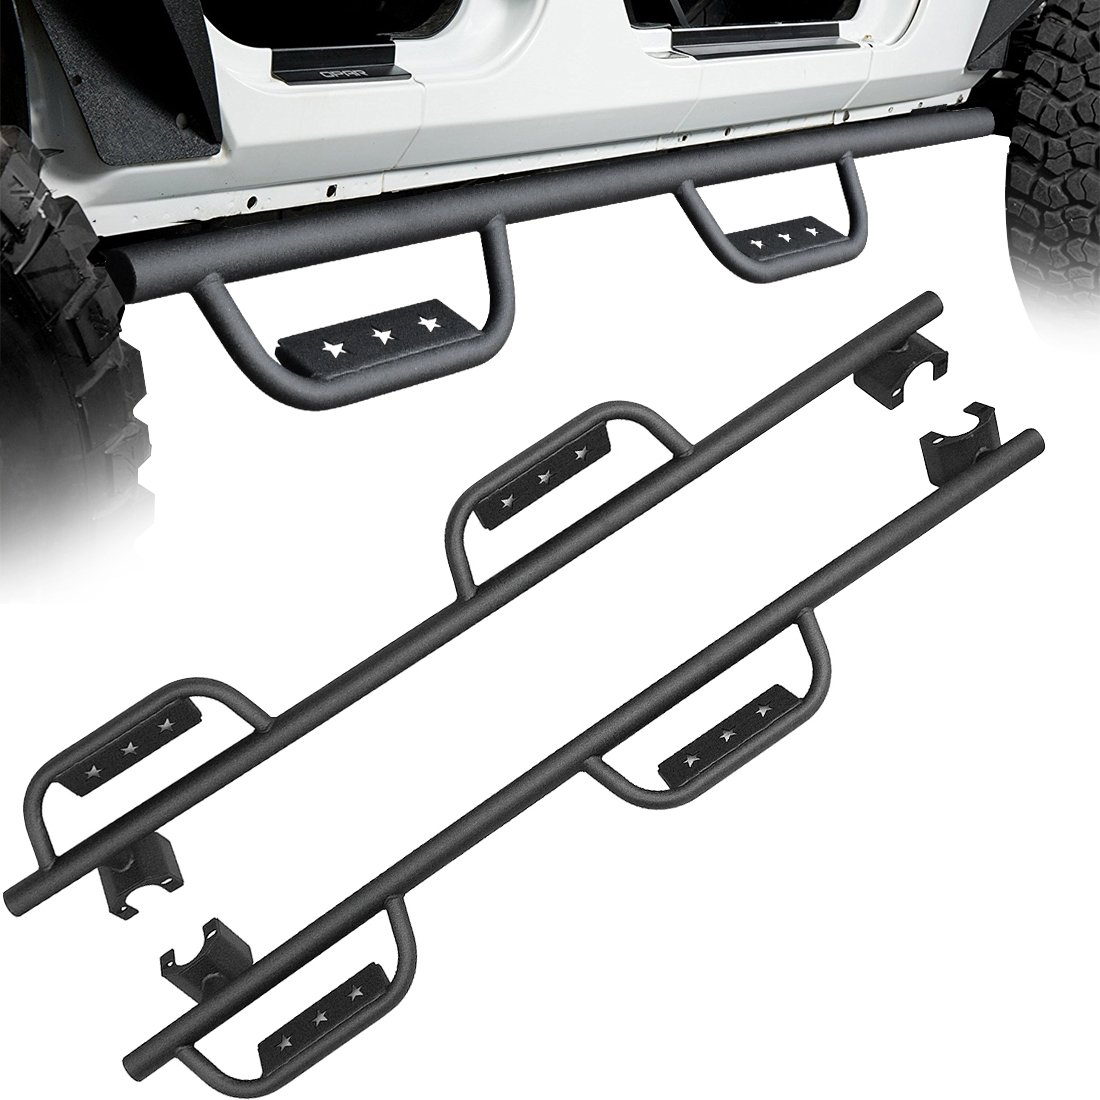 AUTOSAVER88 Foot Pegs Compatible for 07-17 Jeep Wrangler JK & JK Unlimited 2 4DR Black Steel Front Foot Rest Pedal Kick Panel Passenger and Driver Side - Pair